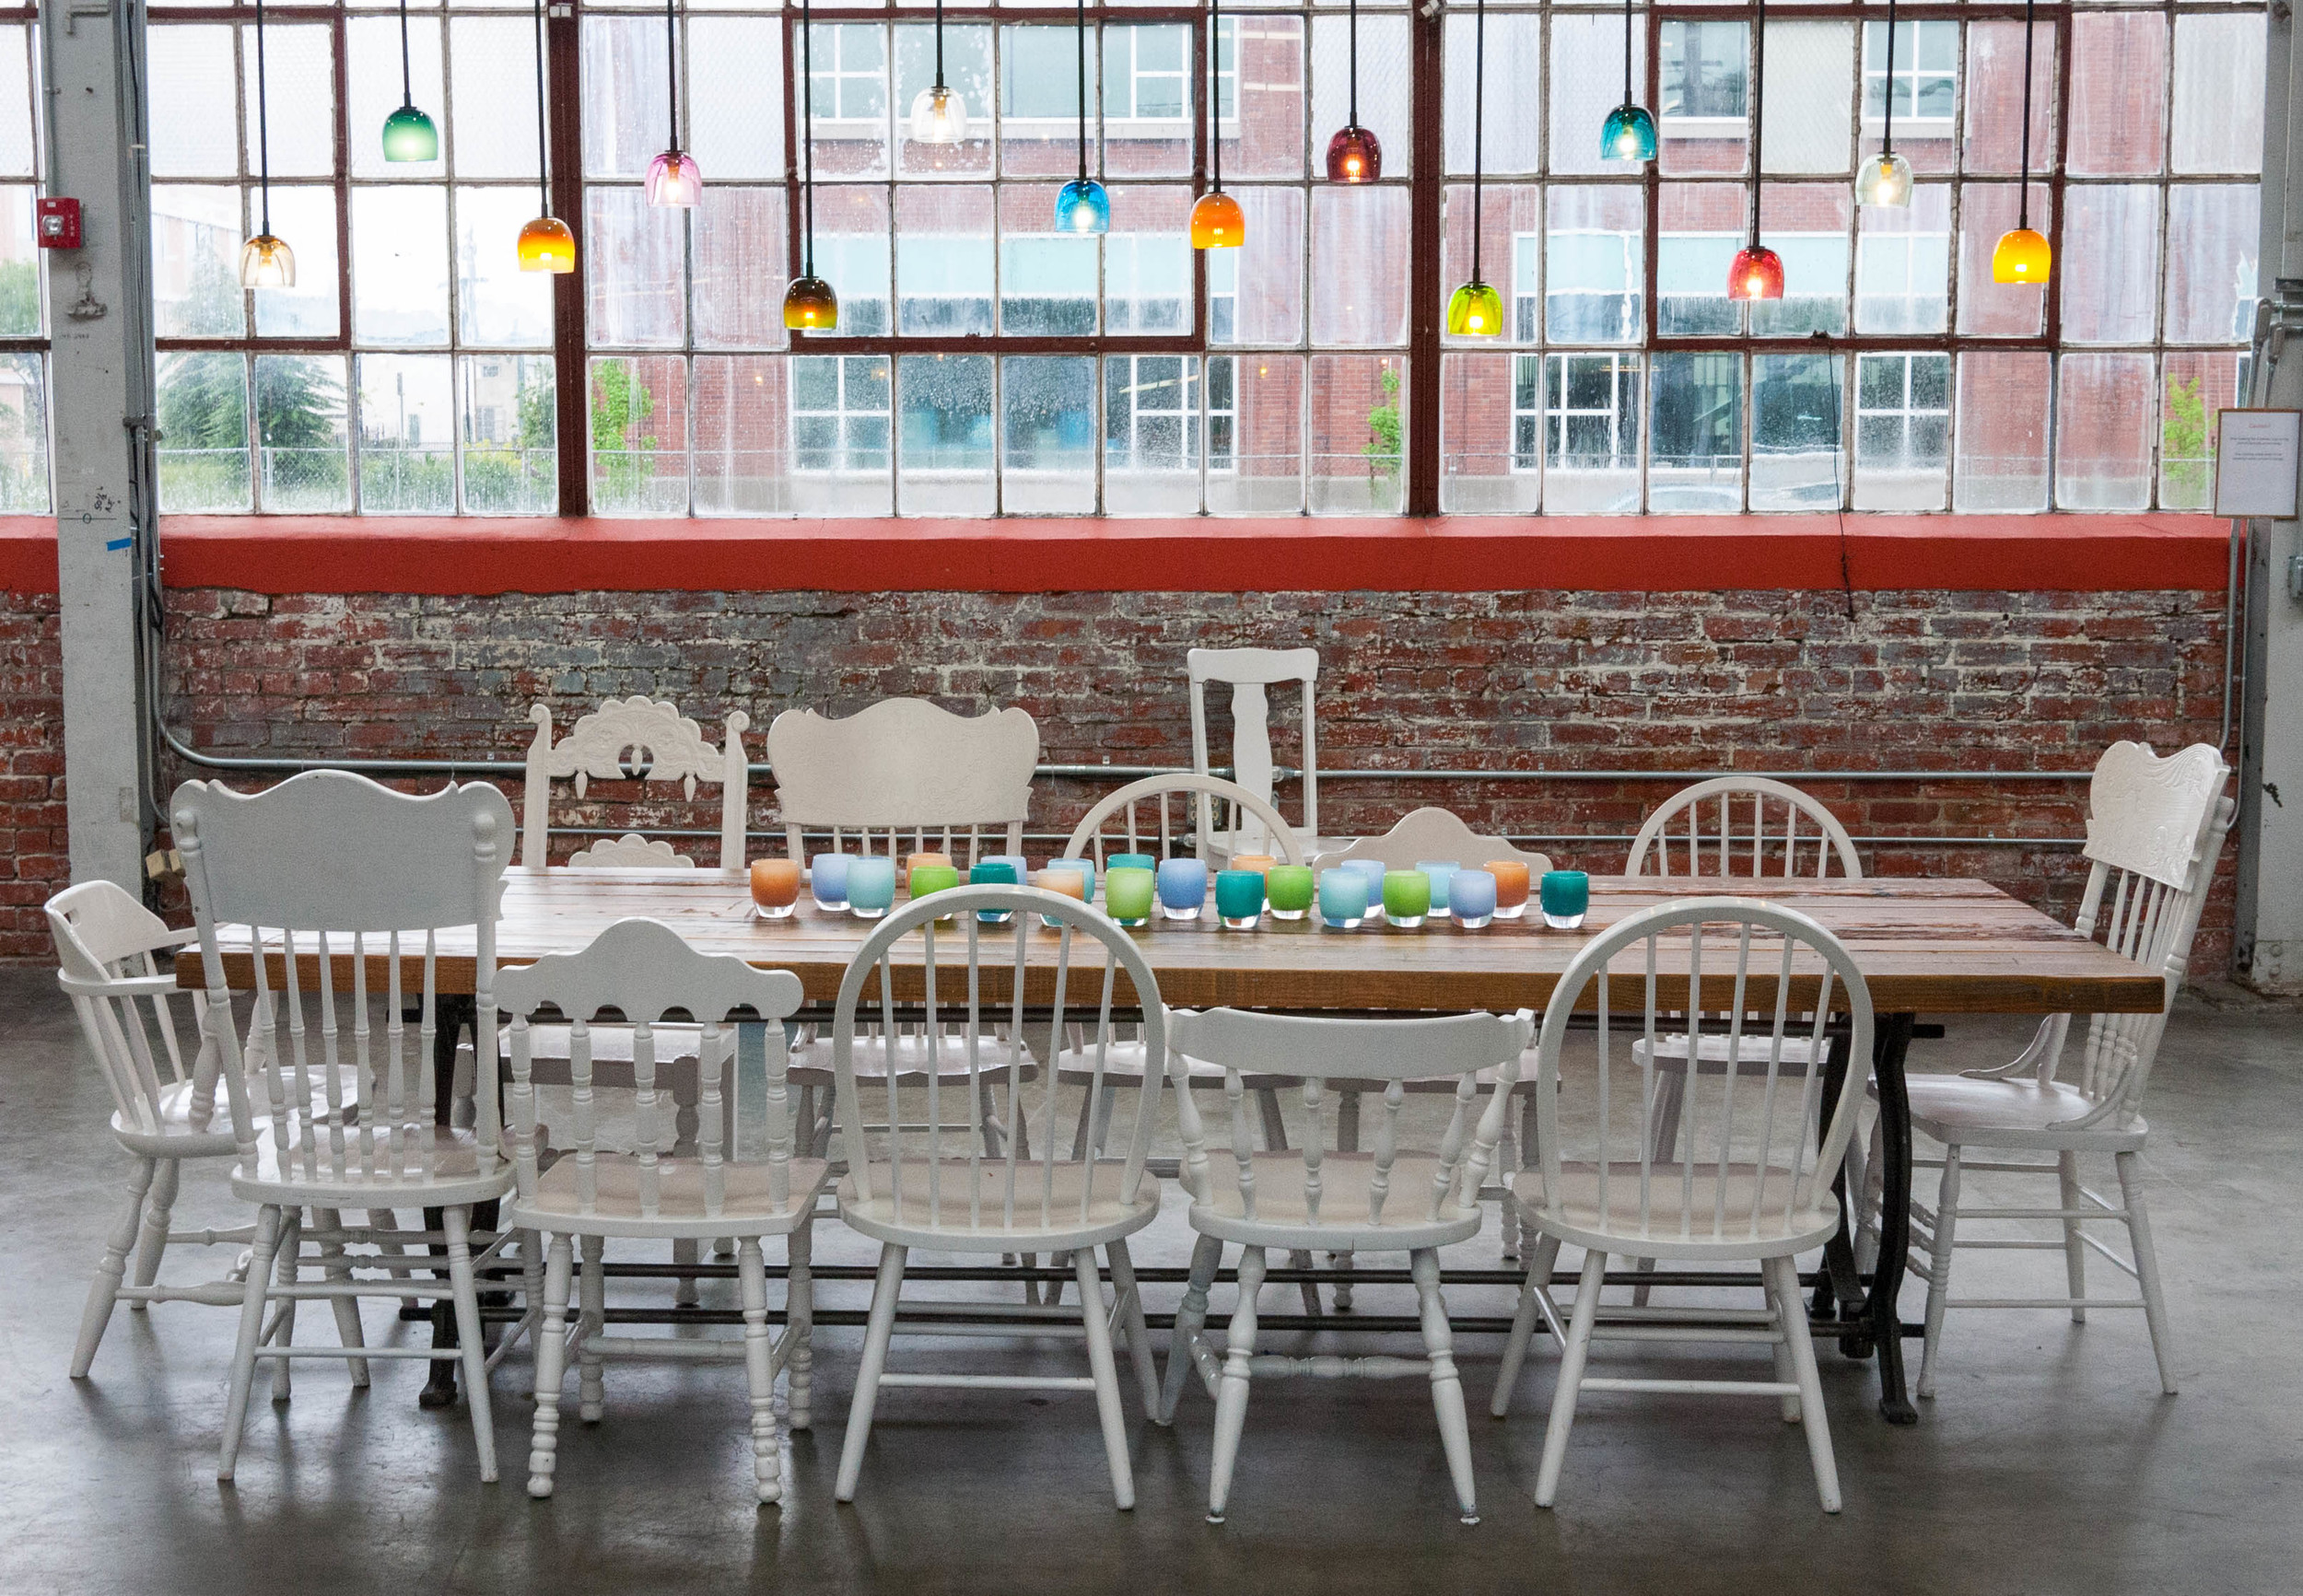 A portion of the glassybaby space is available for events. Rent it for a party, a yoga retreat, a meeting. Anything, they say!